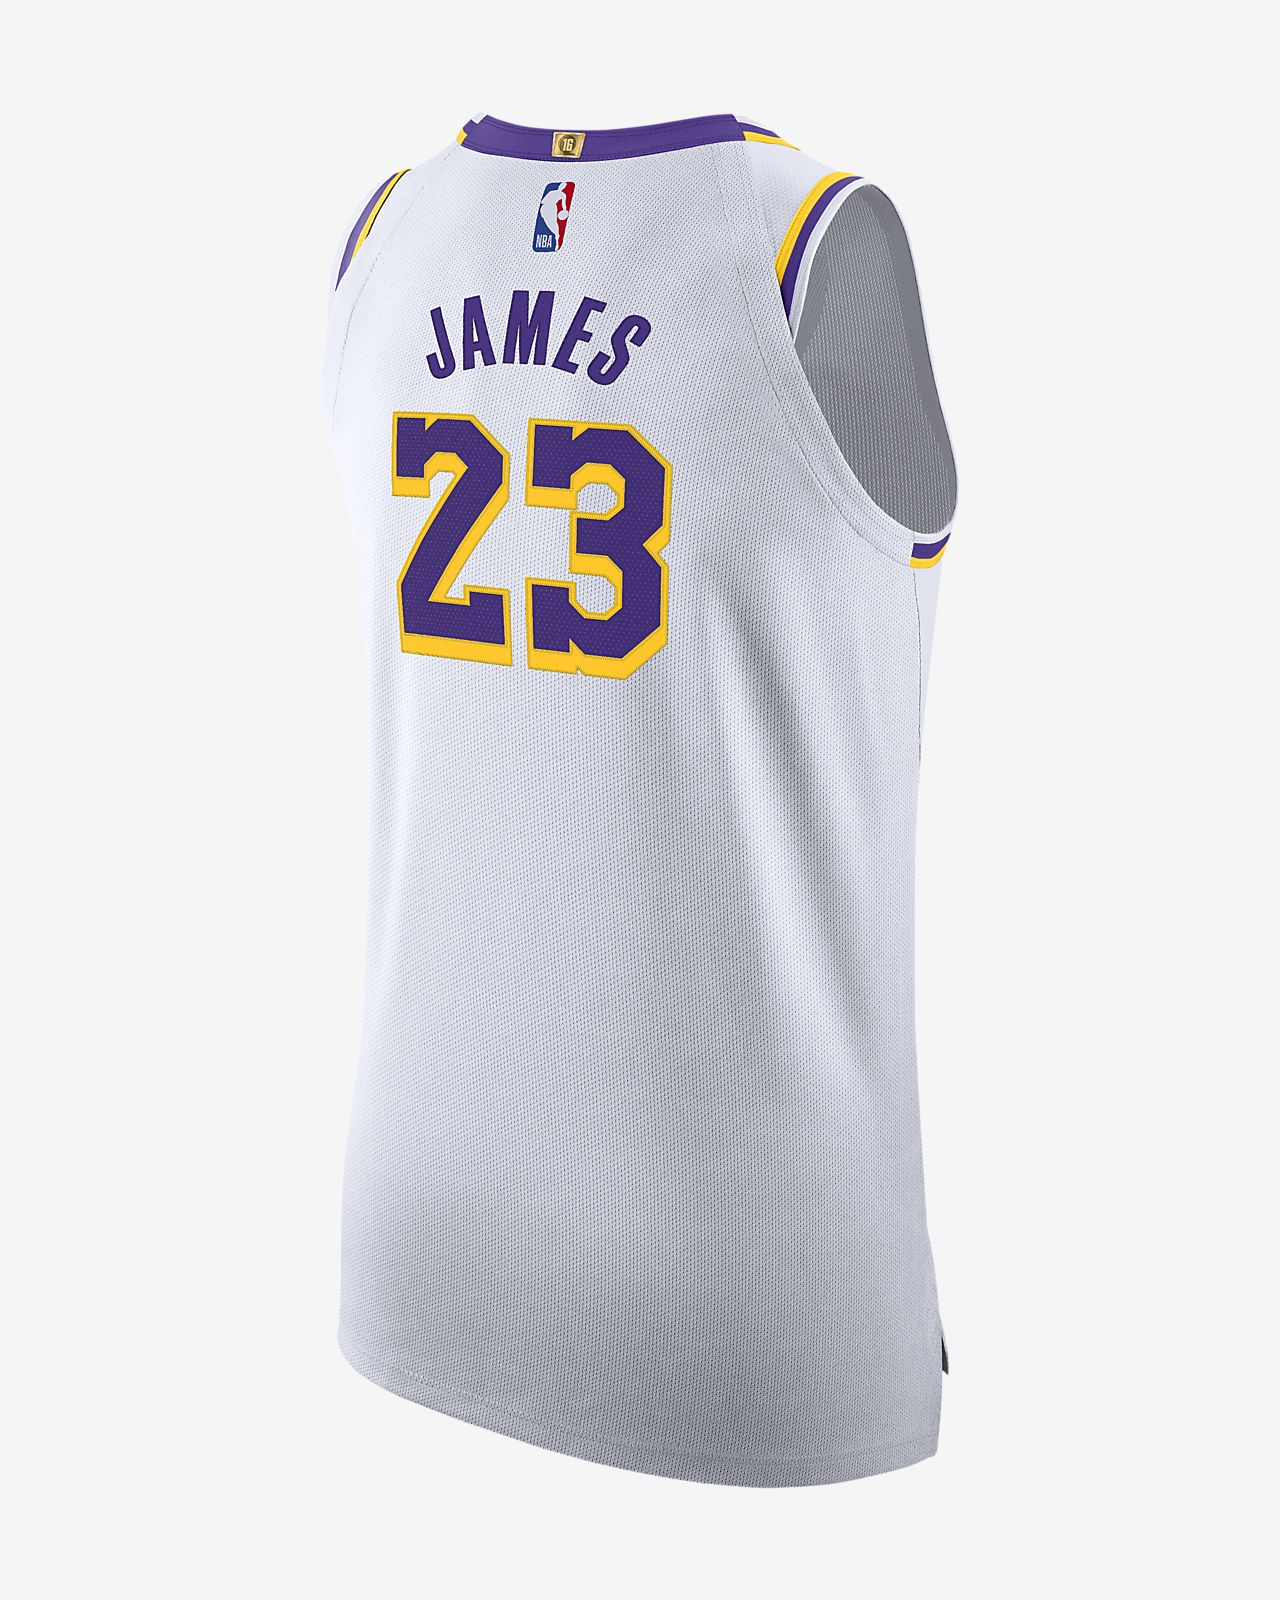 super popular 85d72 a9a02 lebron james official jersey